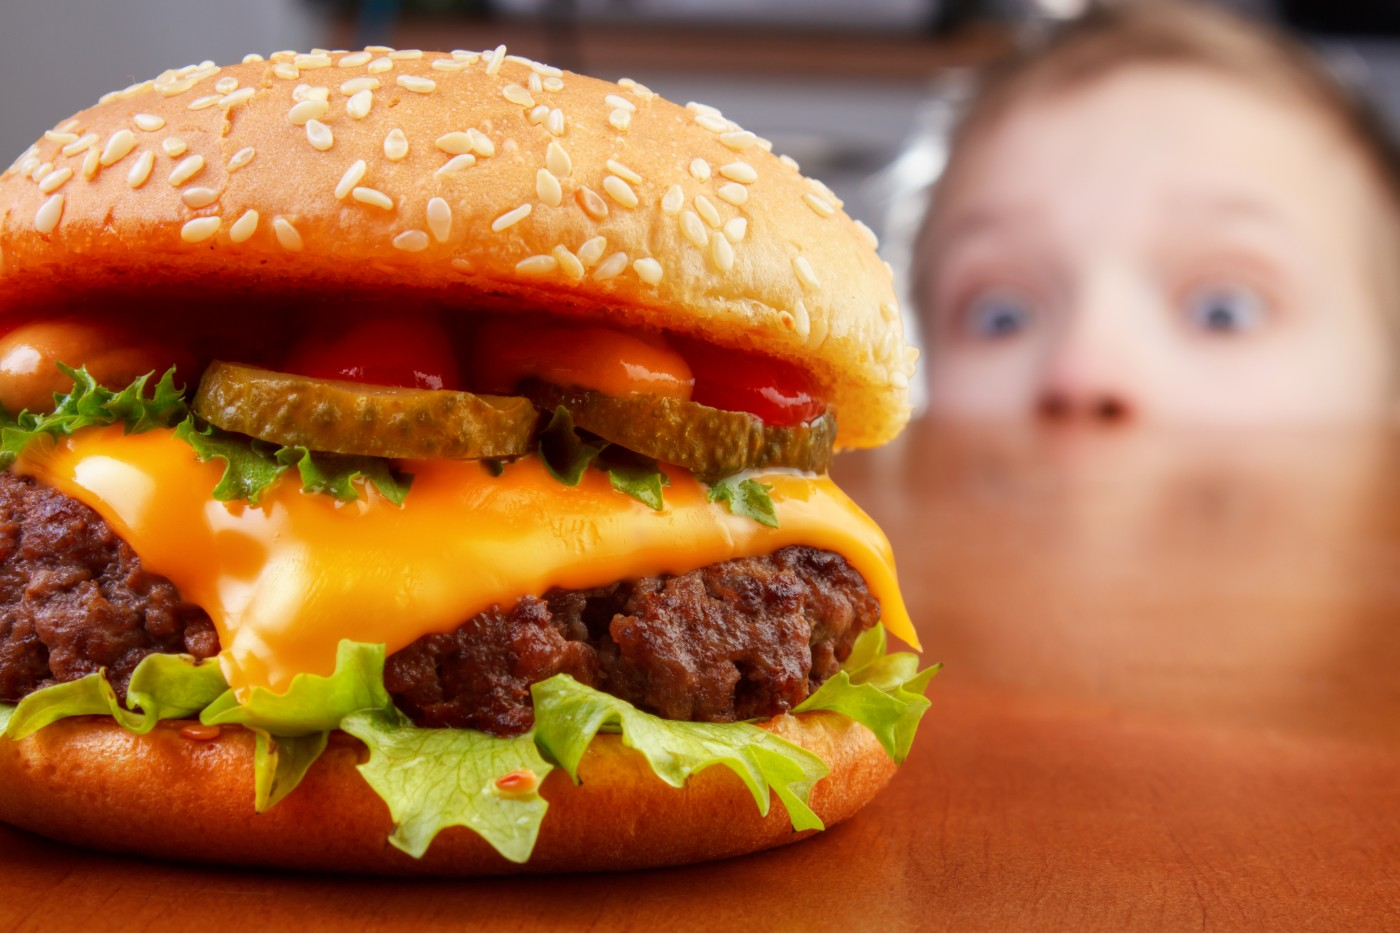 Reducing obesity using fast-food zoning regulations